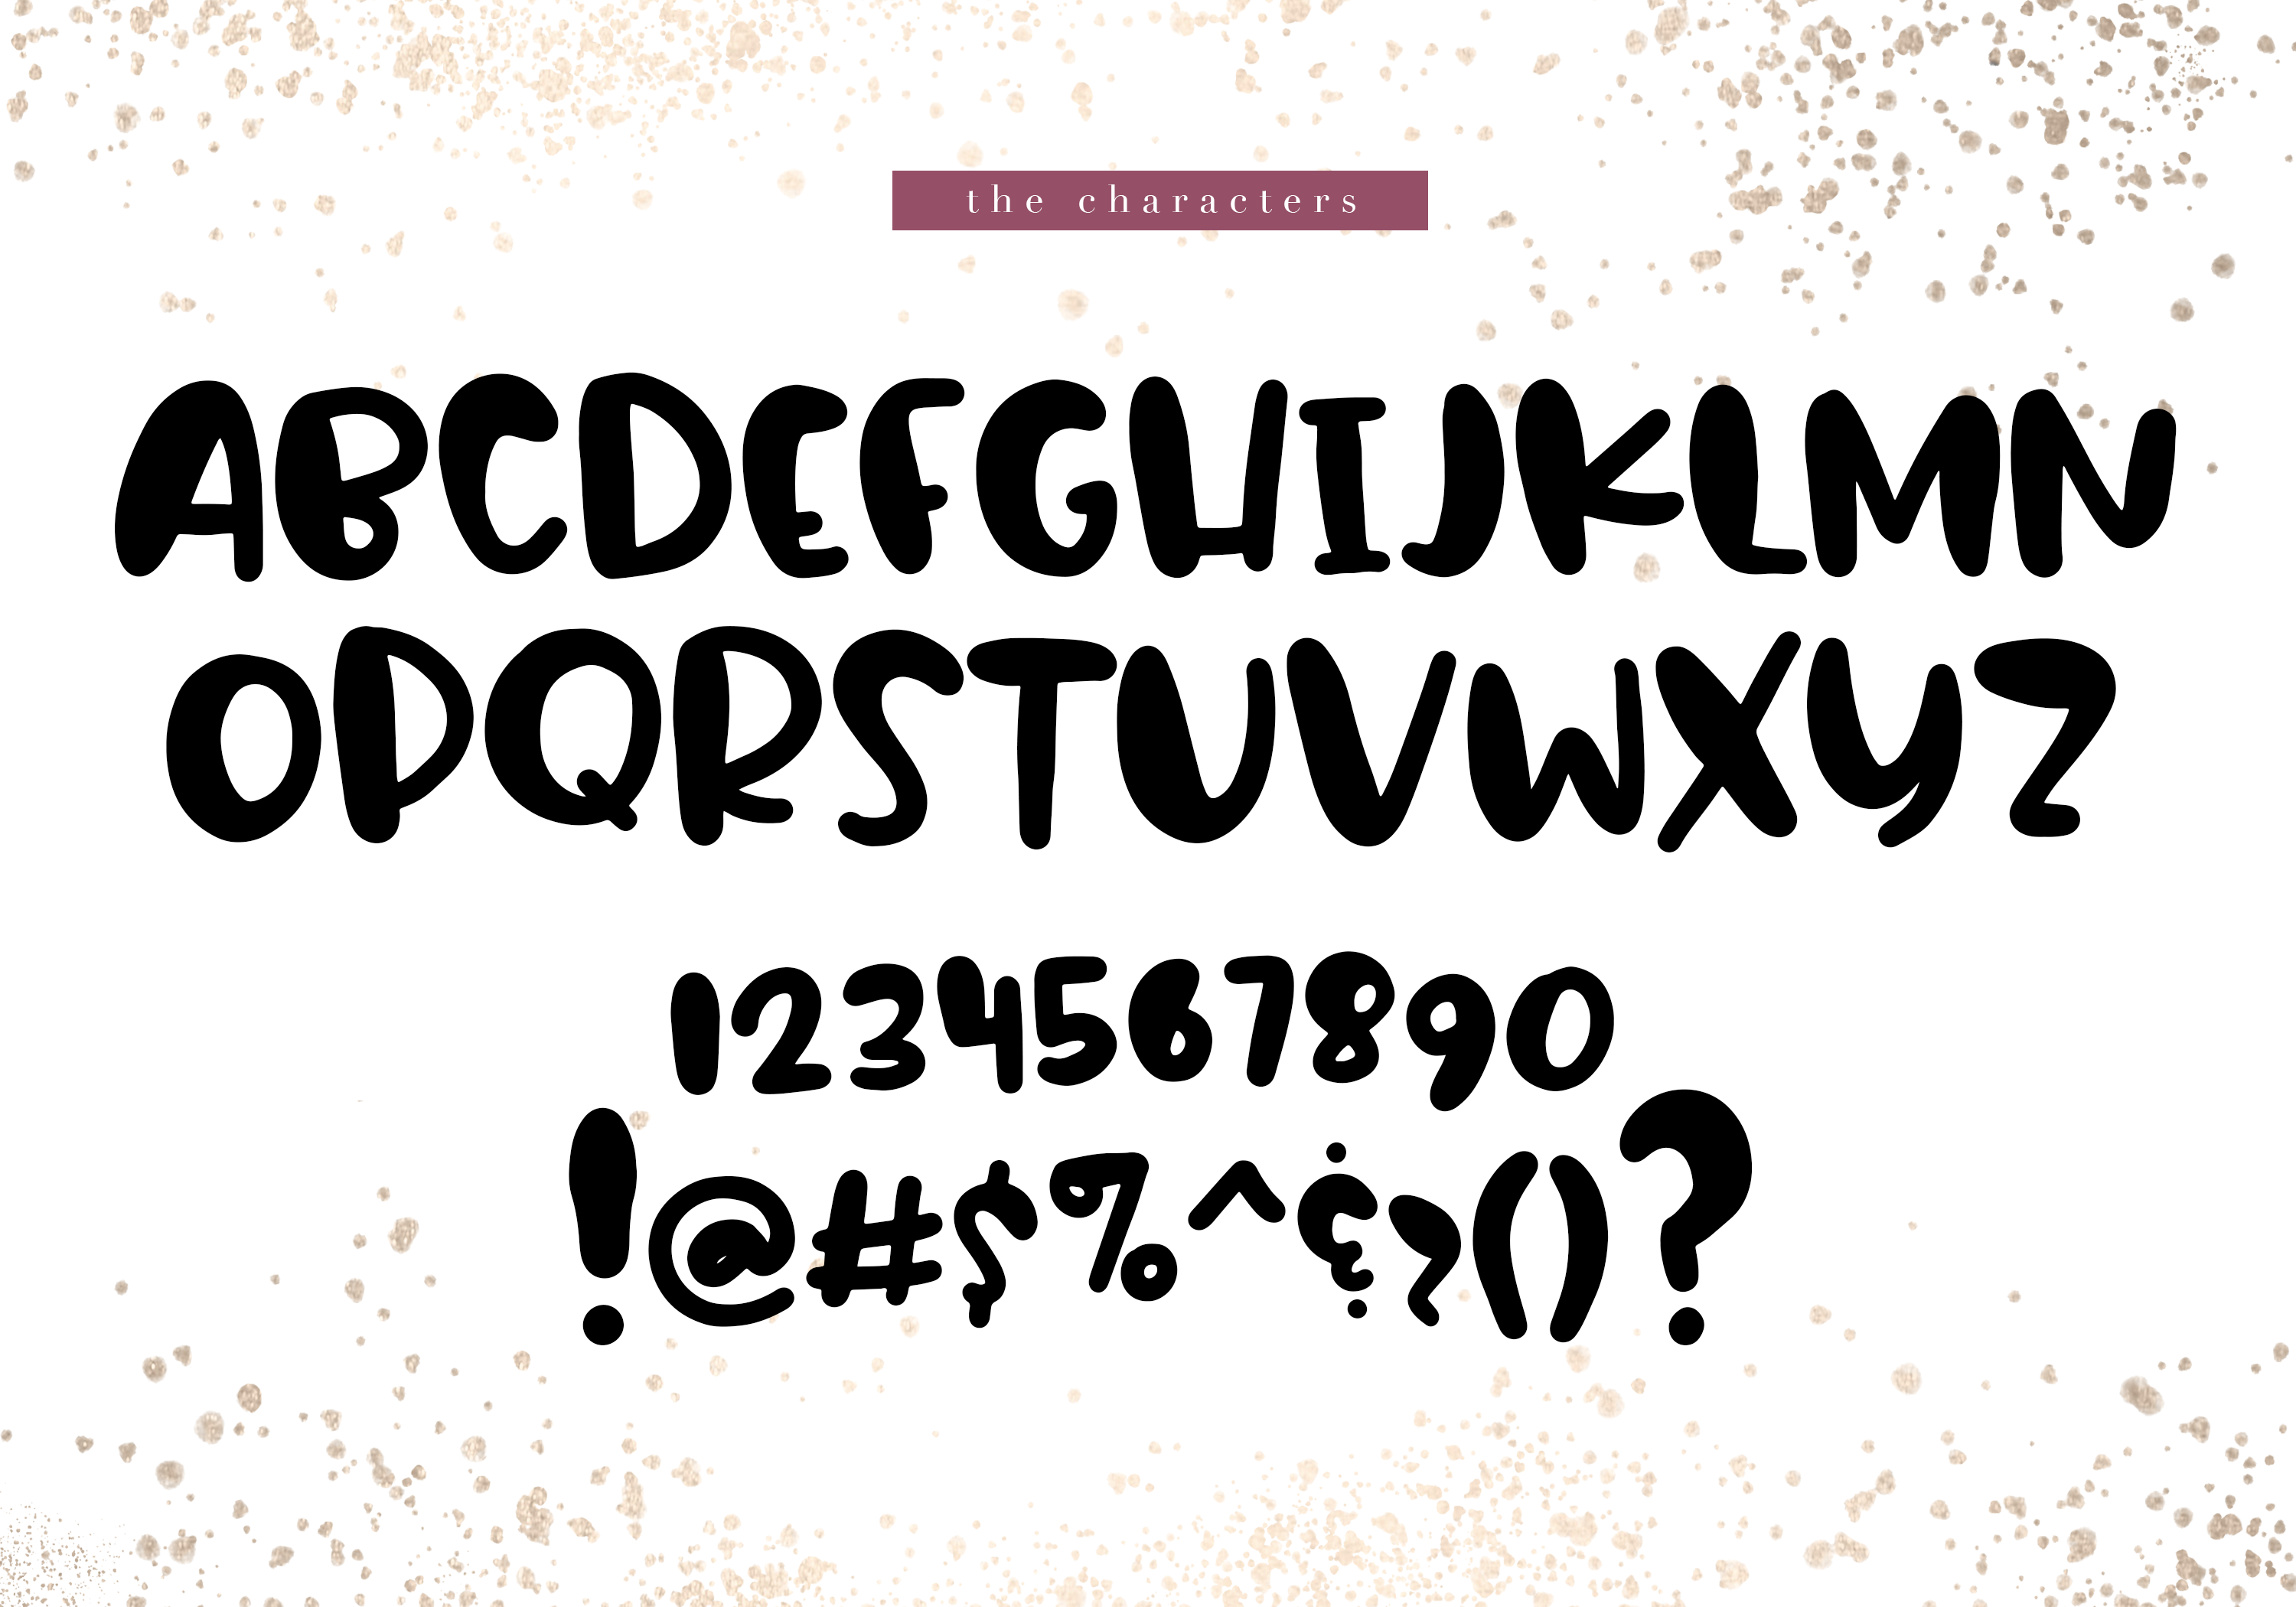 Apple Cider - A Bubbly Handwritten Font example image 7